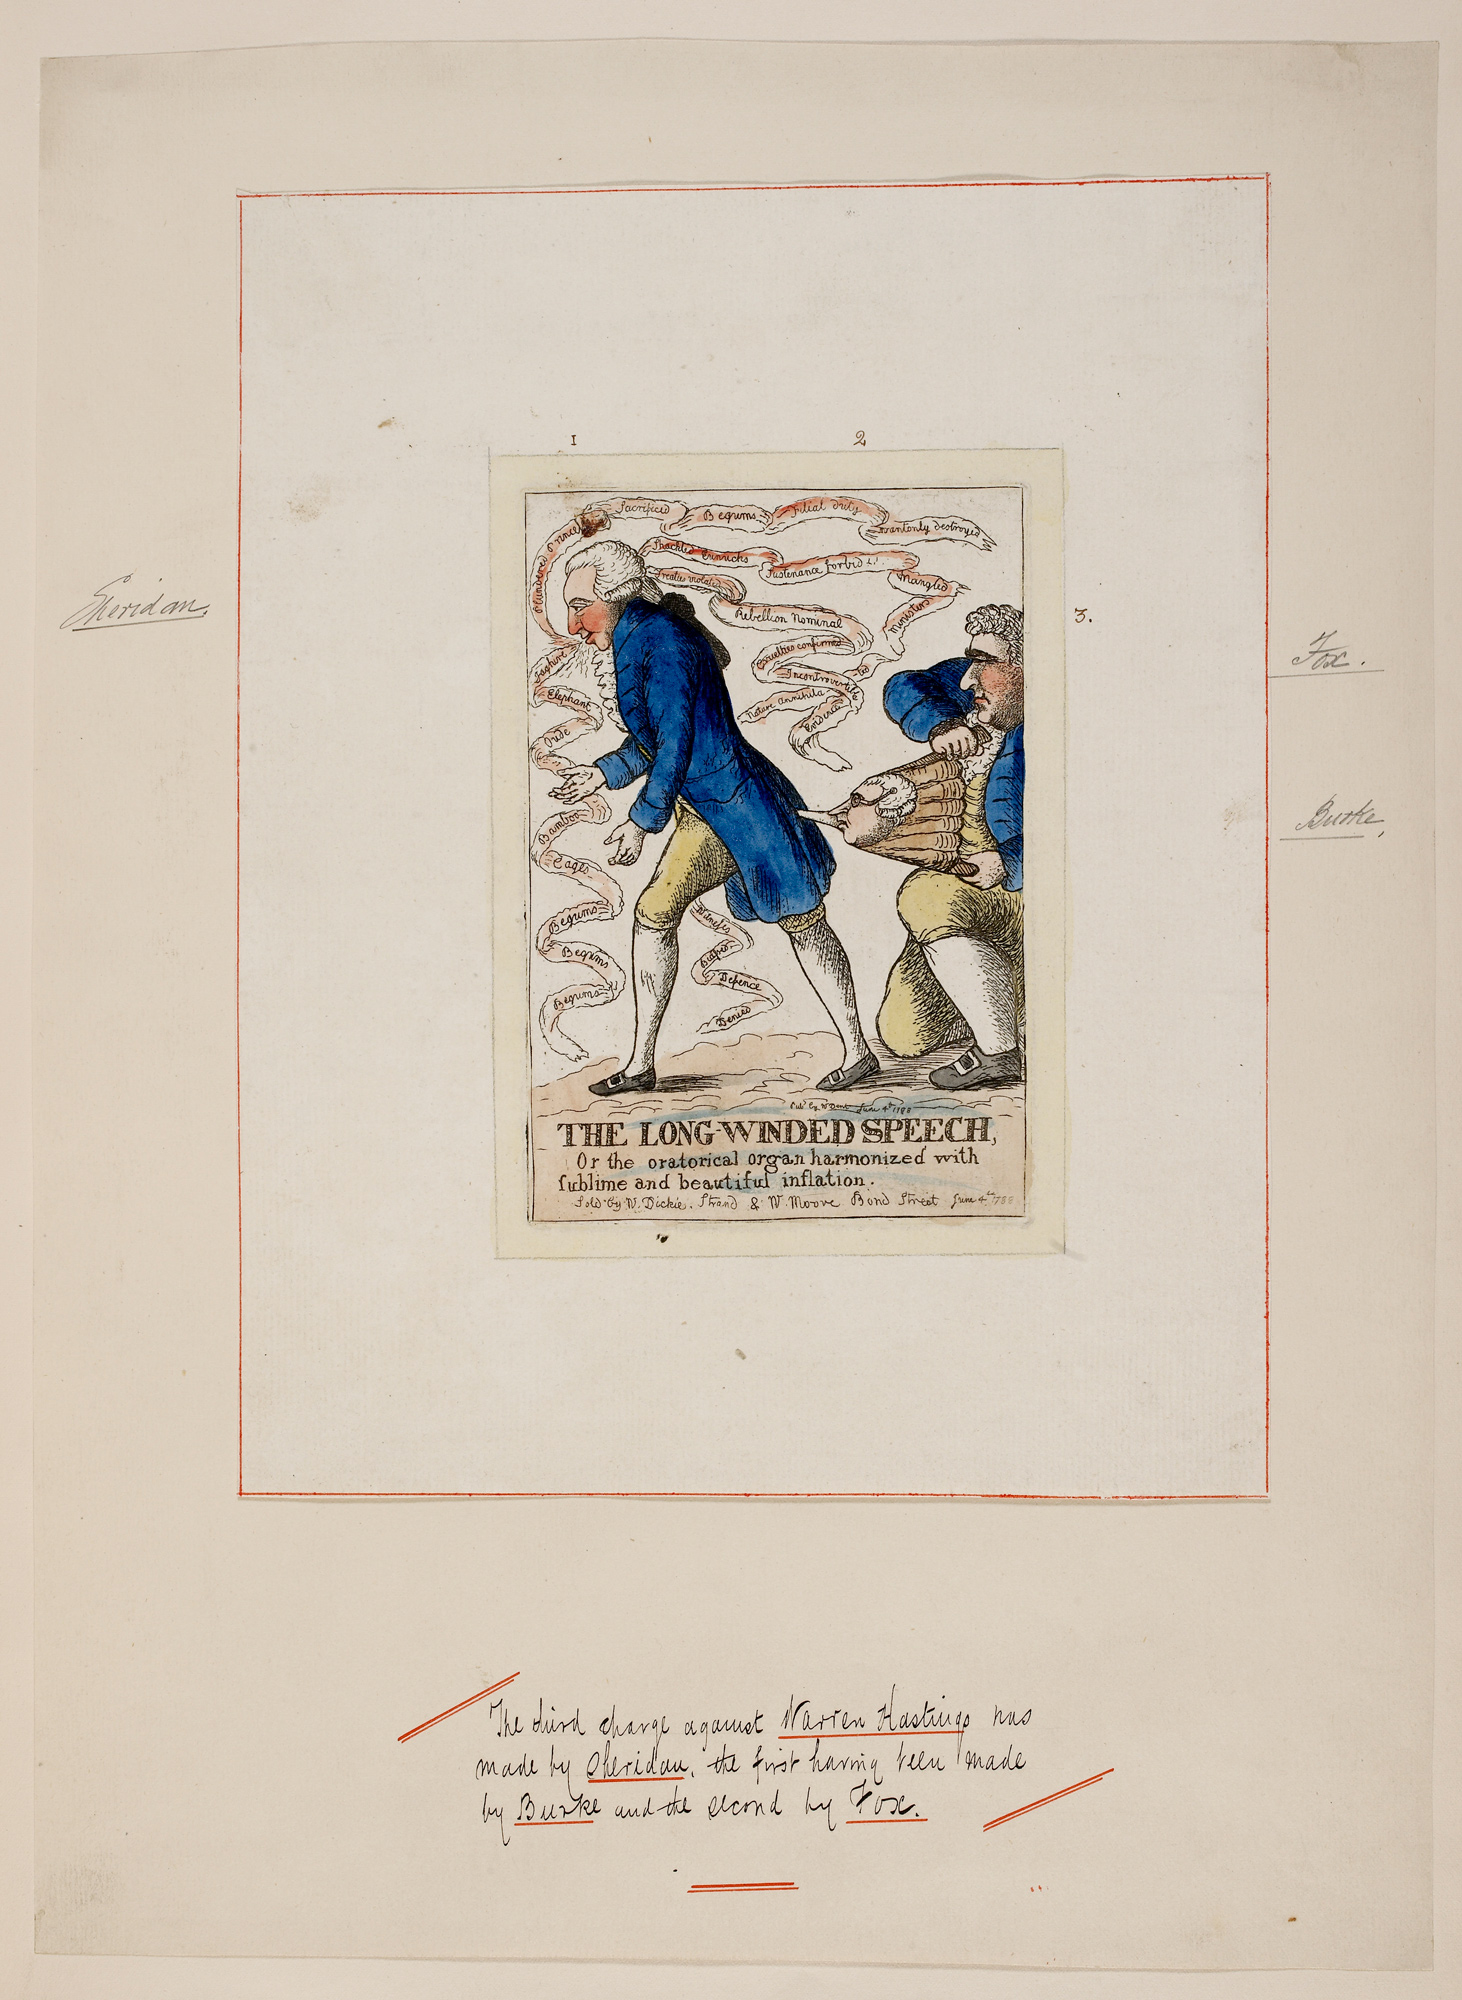 Caricature satirising the 'long-winded speech' of Whig politician Richard Brinsley Sheridan, 1788